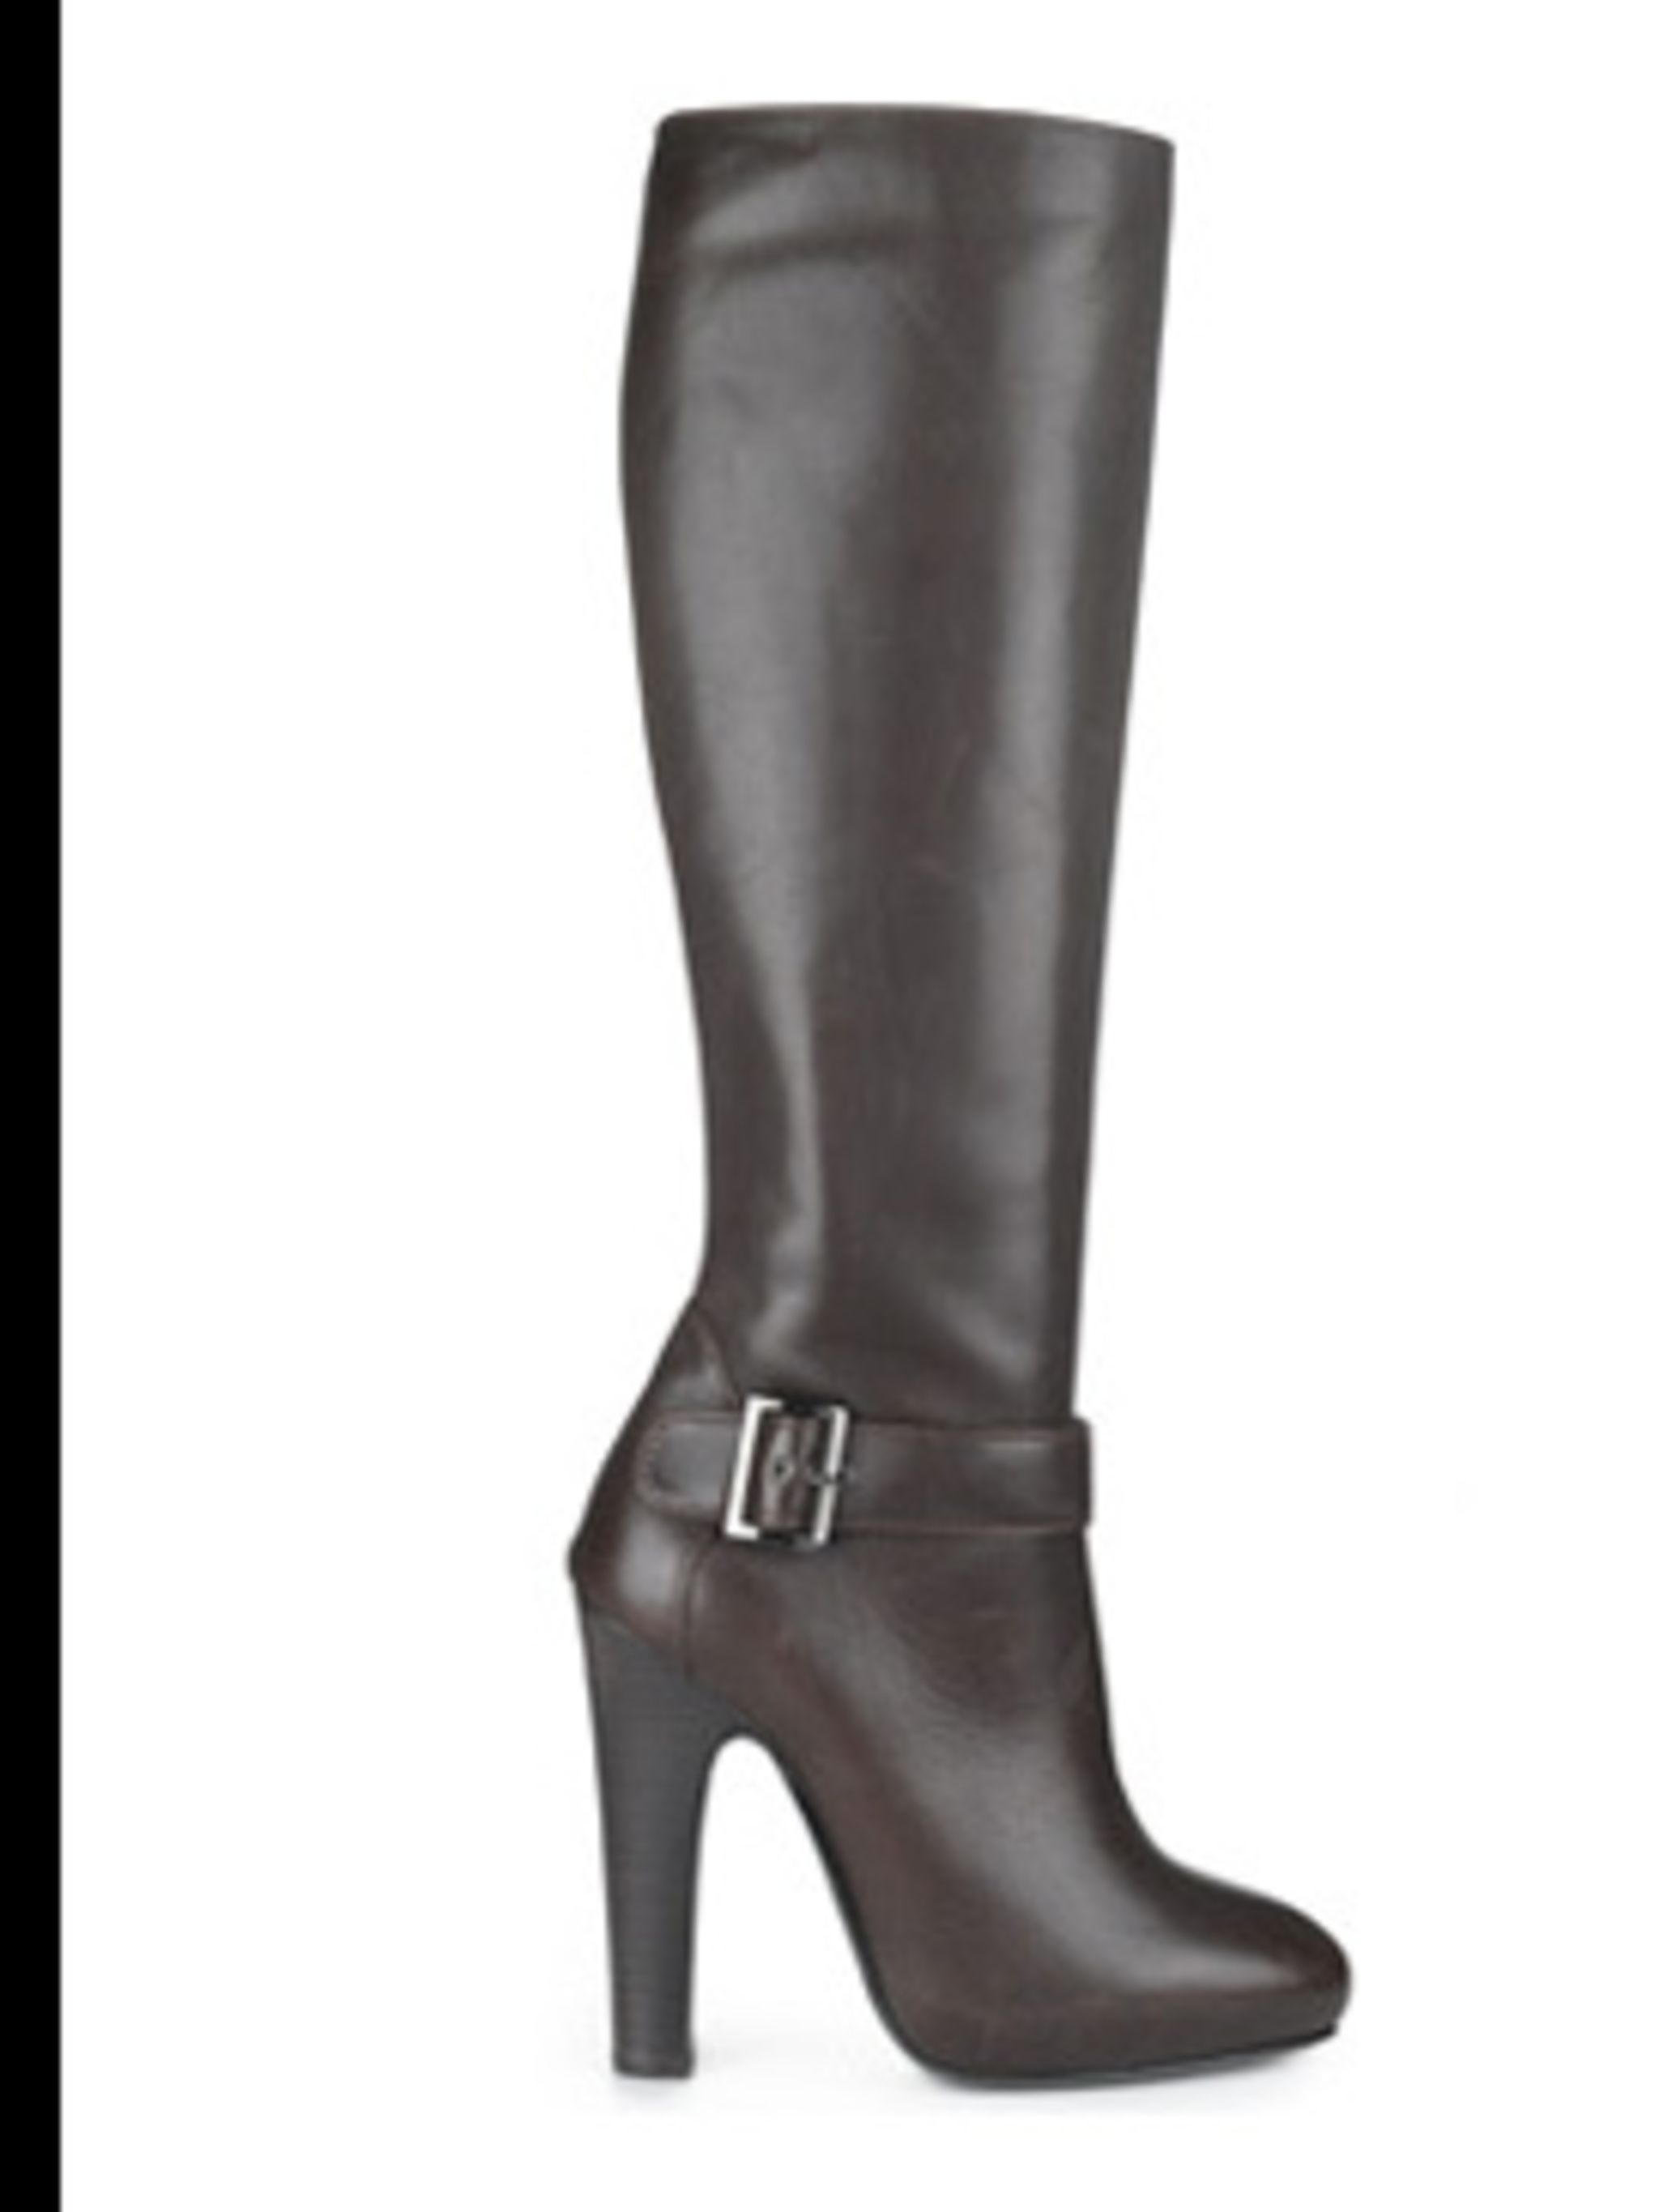 <p>Tall dark brown leather boots £575 by Alberta Ferretti, for stockists call 0207 235 2349</p>